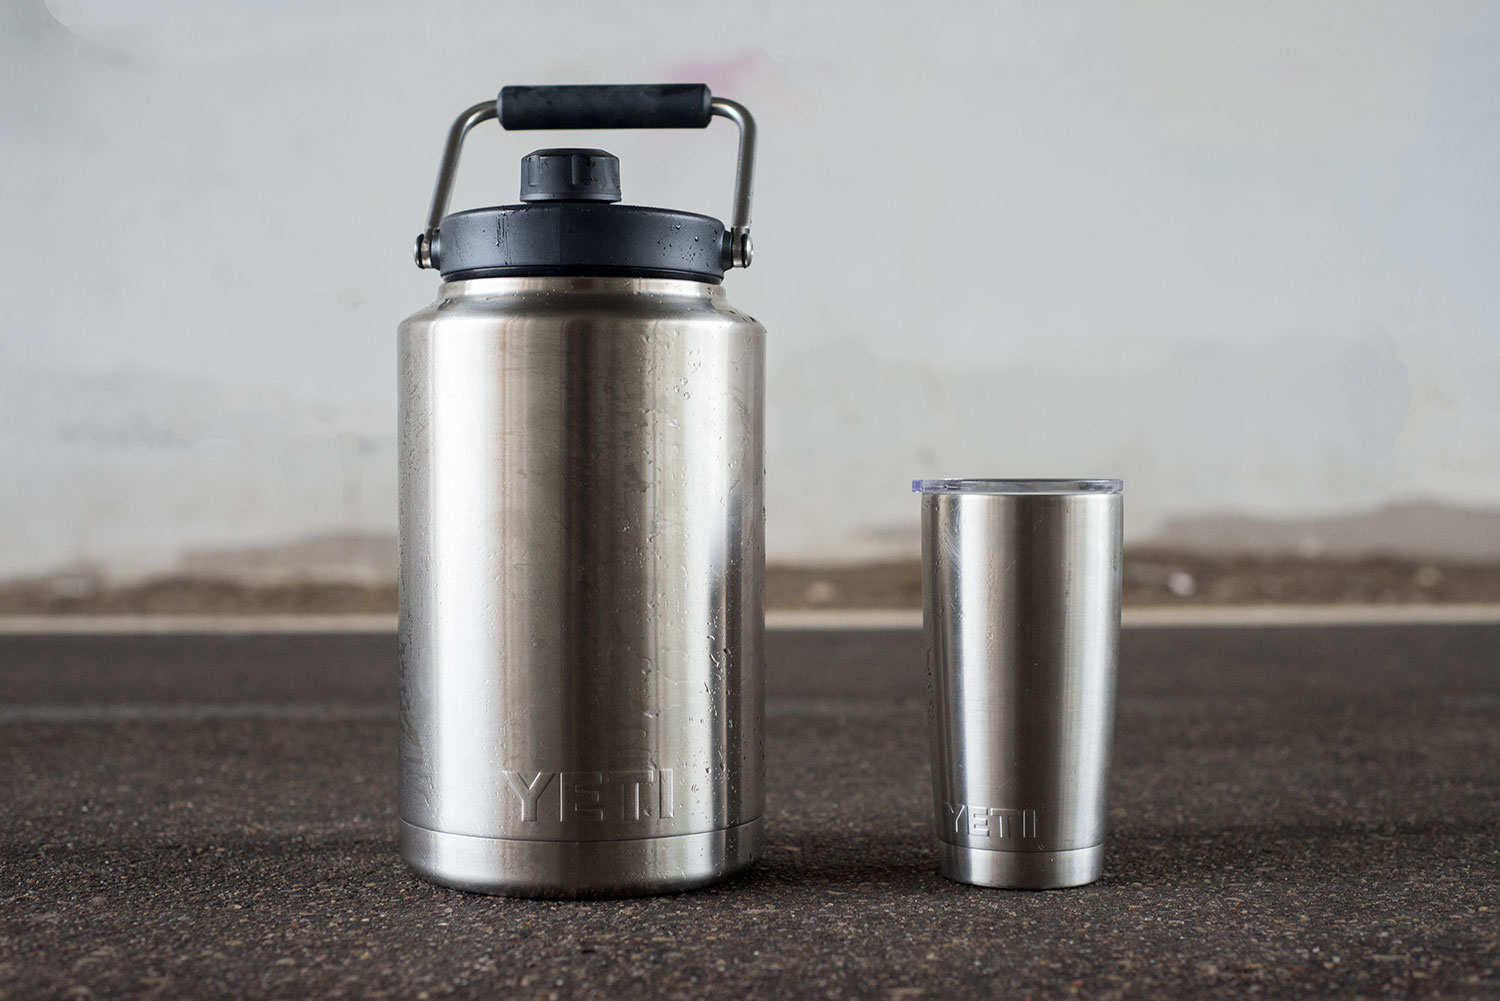 cf838d0cb58 First Look: YETI Rambler One Gallon 'Jug' Review | GearJunkie